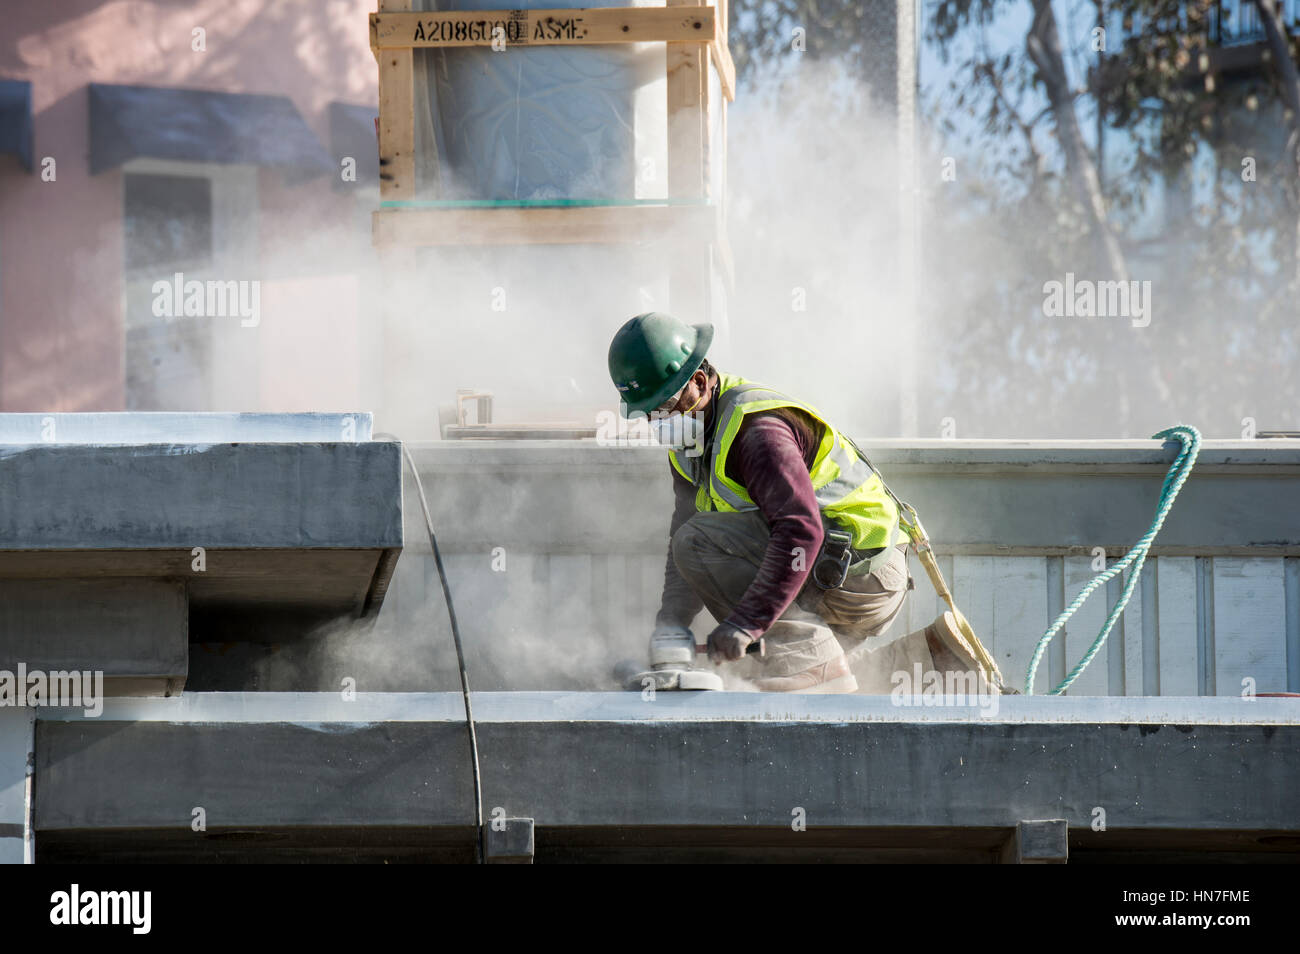 Laguna Beach, California. Construction worker sanding the roof flat on a new lifeguard station. - Stock Image